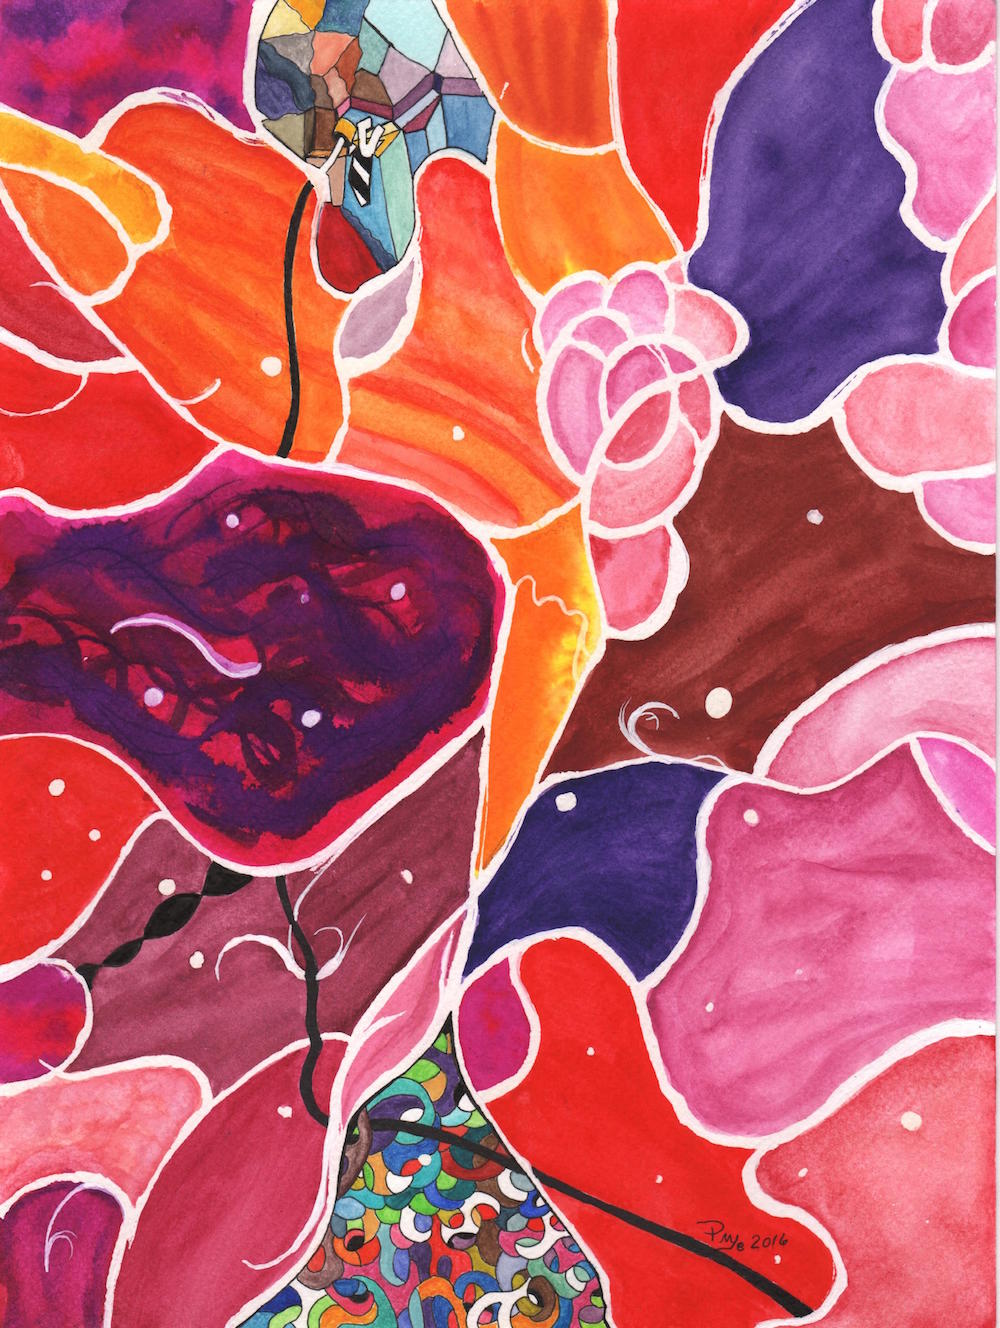 Title: Glimmer of Hope Medium: Watercolor and mixed media on paper Size: 12 x9